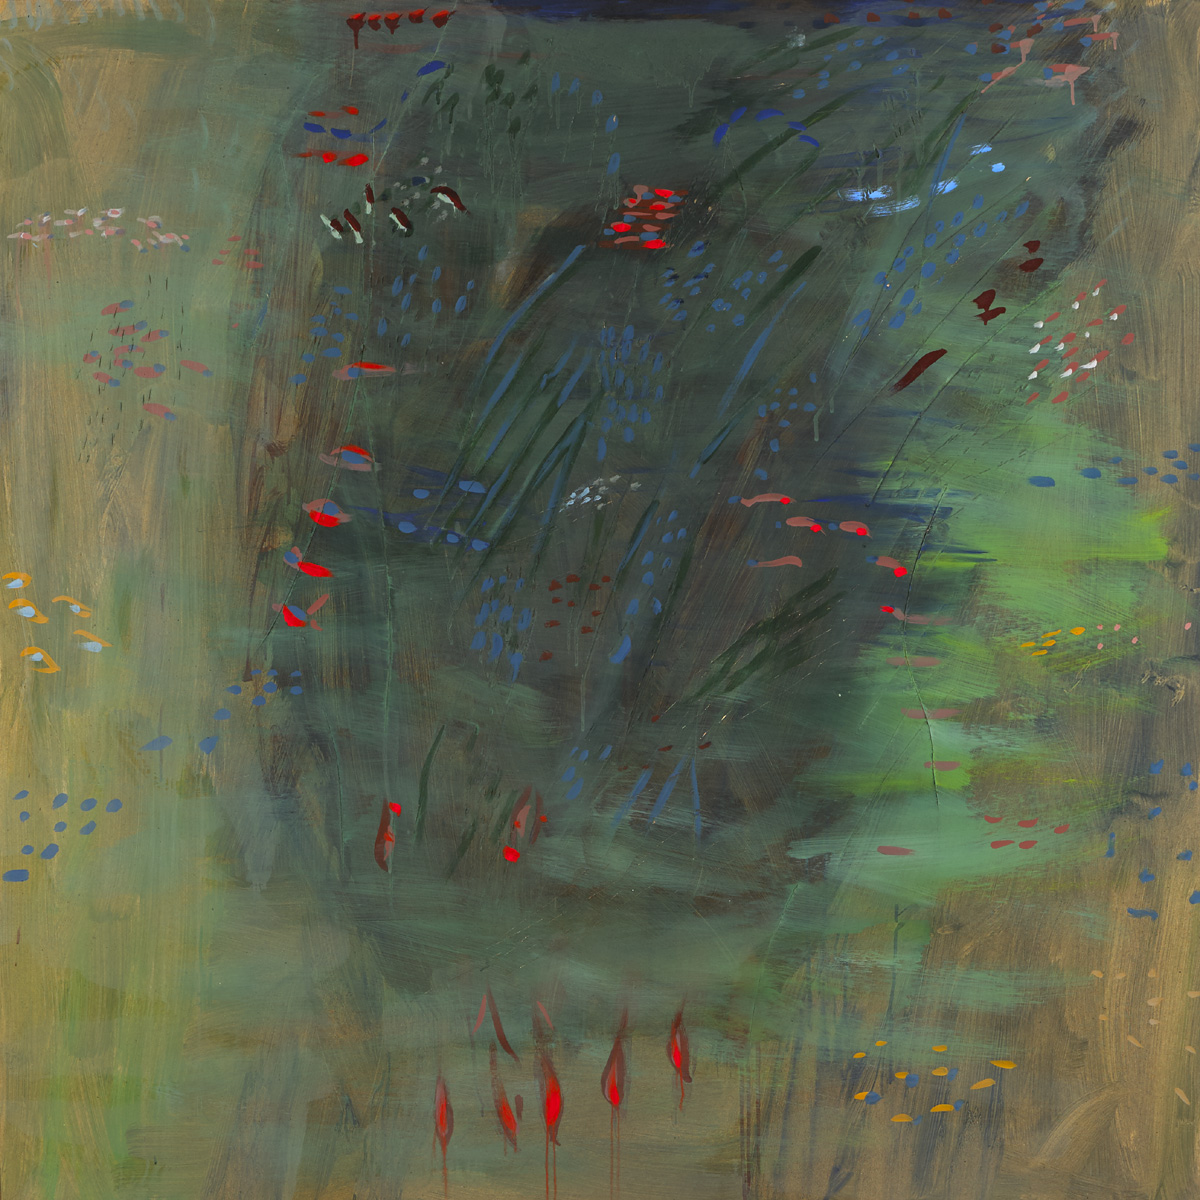 POND REVERIE I, 1994 by Tony O'Malley sold for �22,000 at Whyte's Auctions